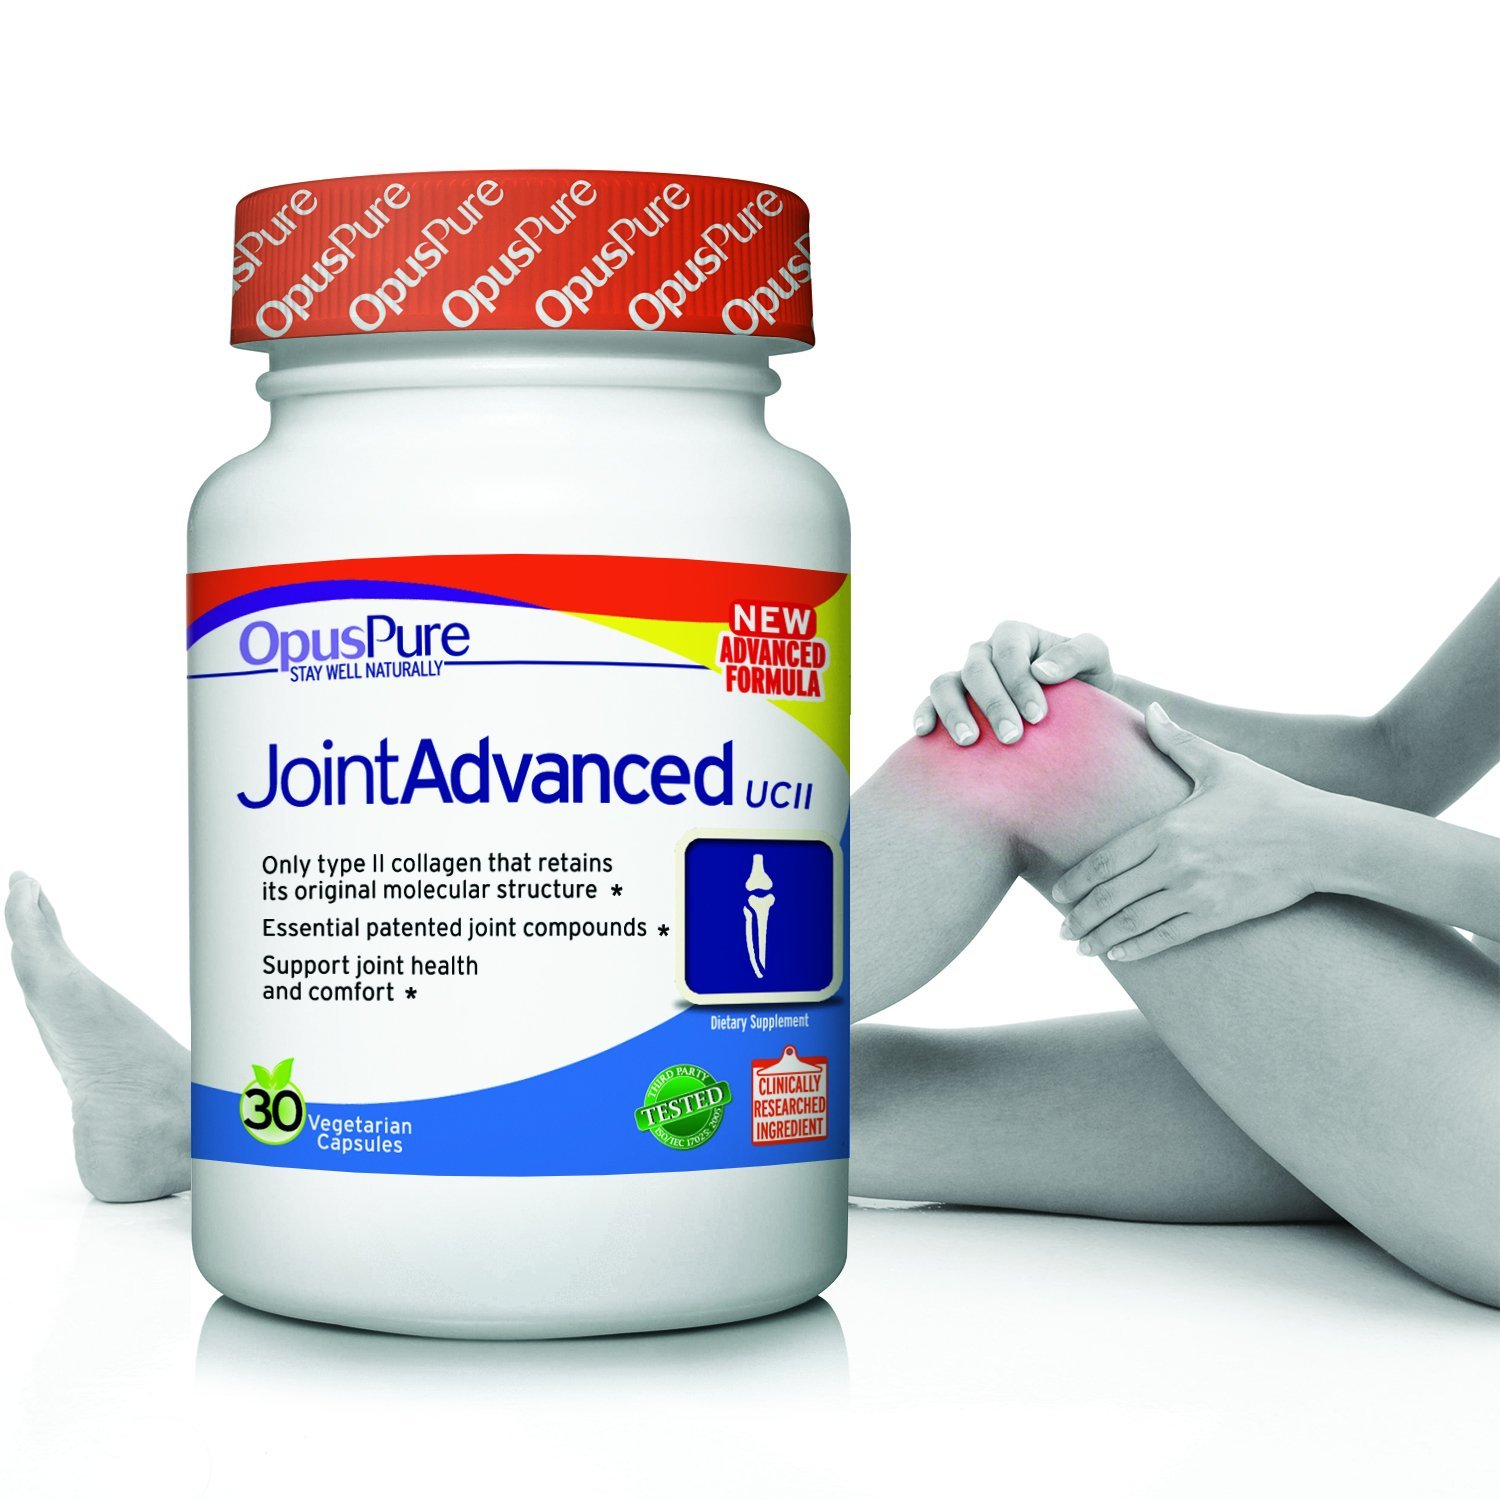 Opus Pure UC-II Collagen Glucosamine Turmeric Boswellia Hyaluronic Acid Best Joint Pain Relief Supplement with French Pine Bark